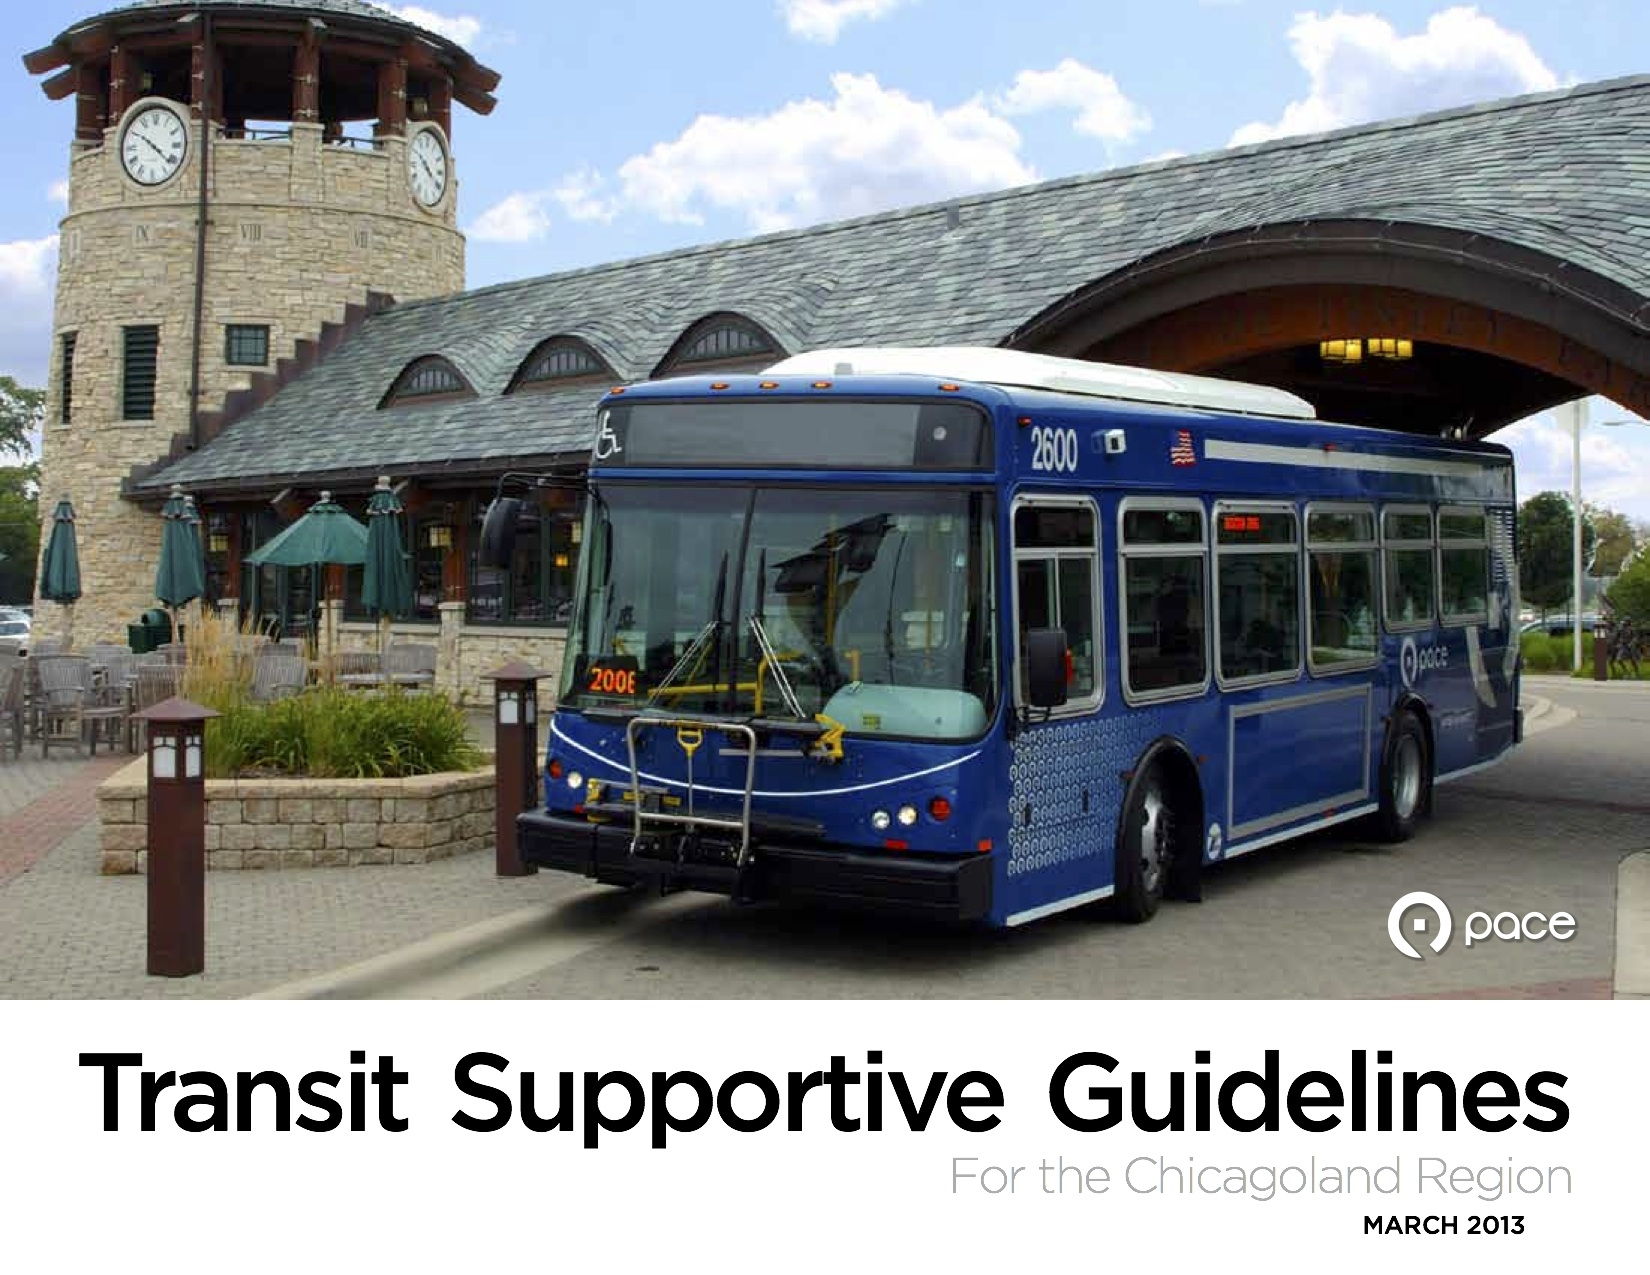 Transit Supportive Guidelines